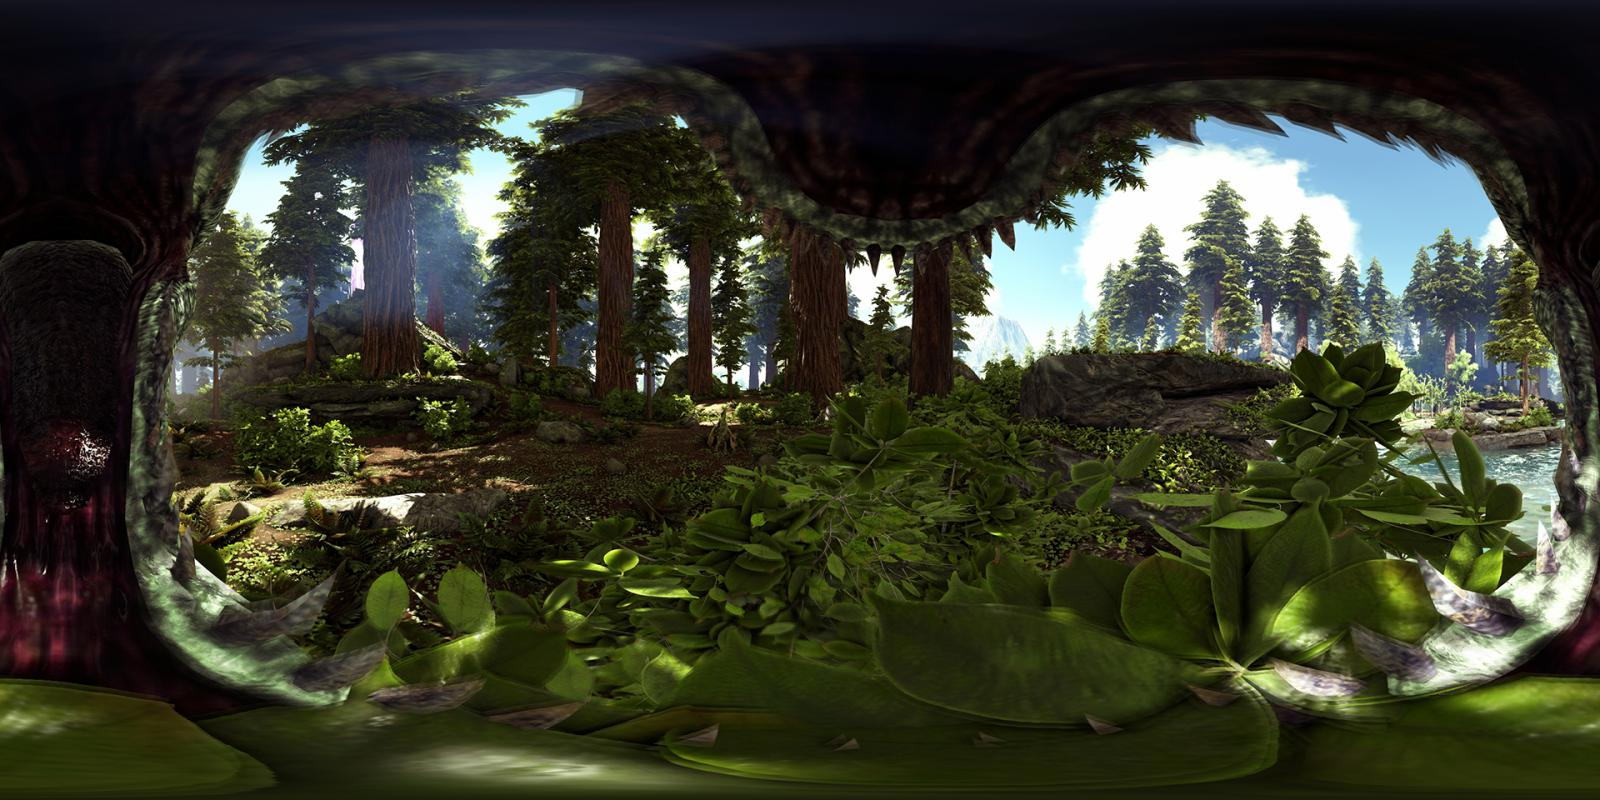 large.58cddf65346dc_FataL1ty-SpinosMaw-Panoramic360Stereoscopic3D.jpg